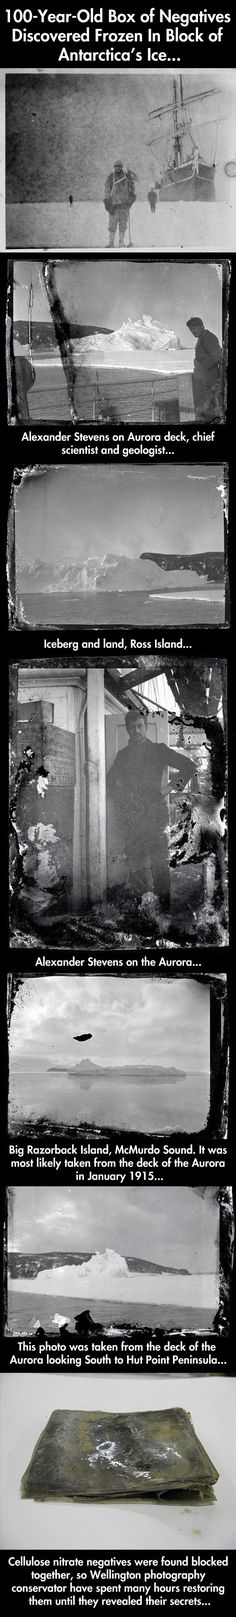 Photos discovered frozen in block of ice…Amazing!!